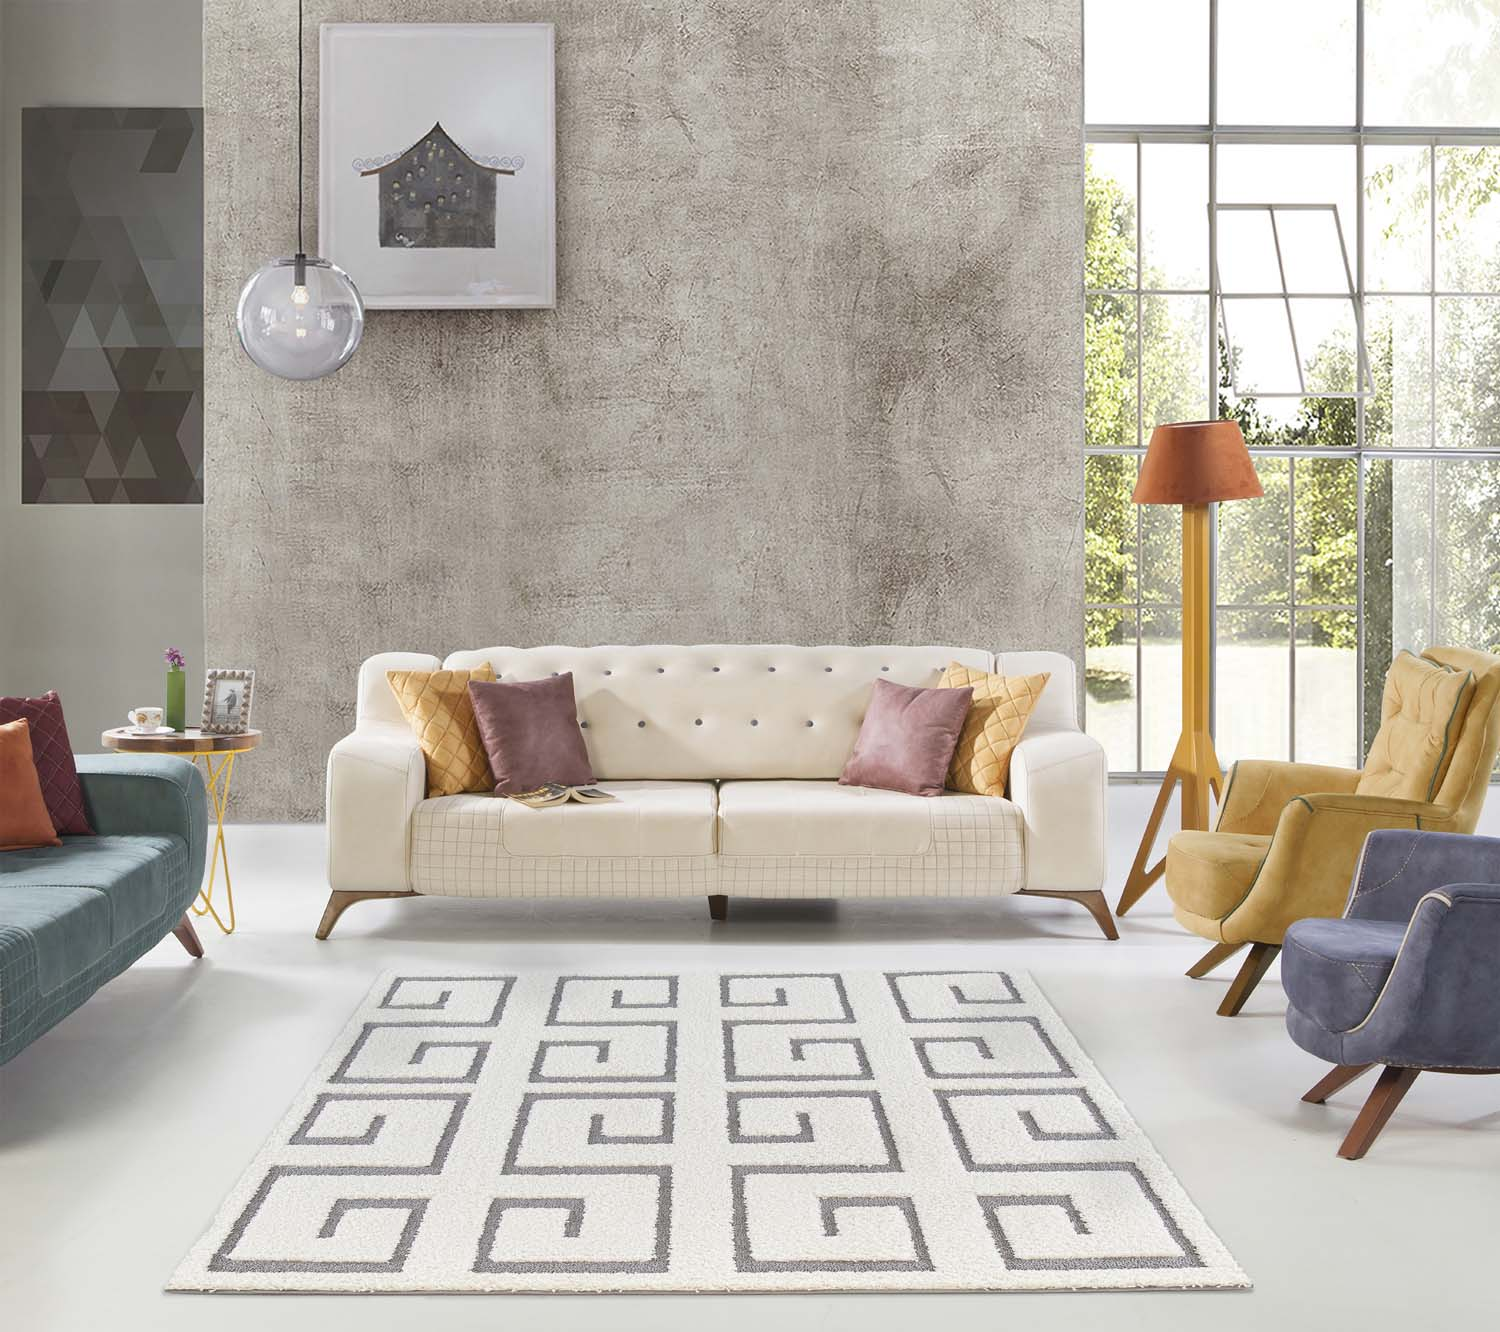 Mod Arte Platinum Shag Collection Plush Area Rug Modern Contemporary Style White Gray 6 7 X6 7 Sq